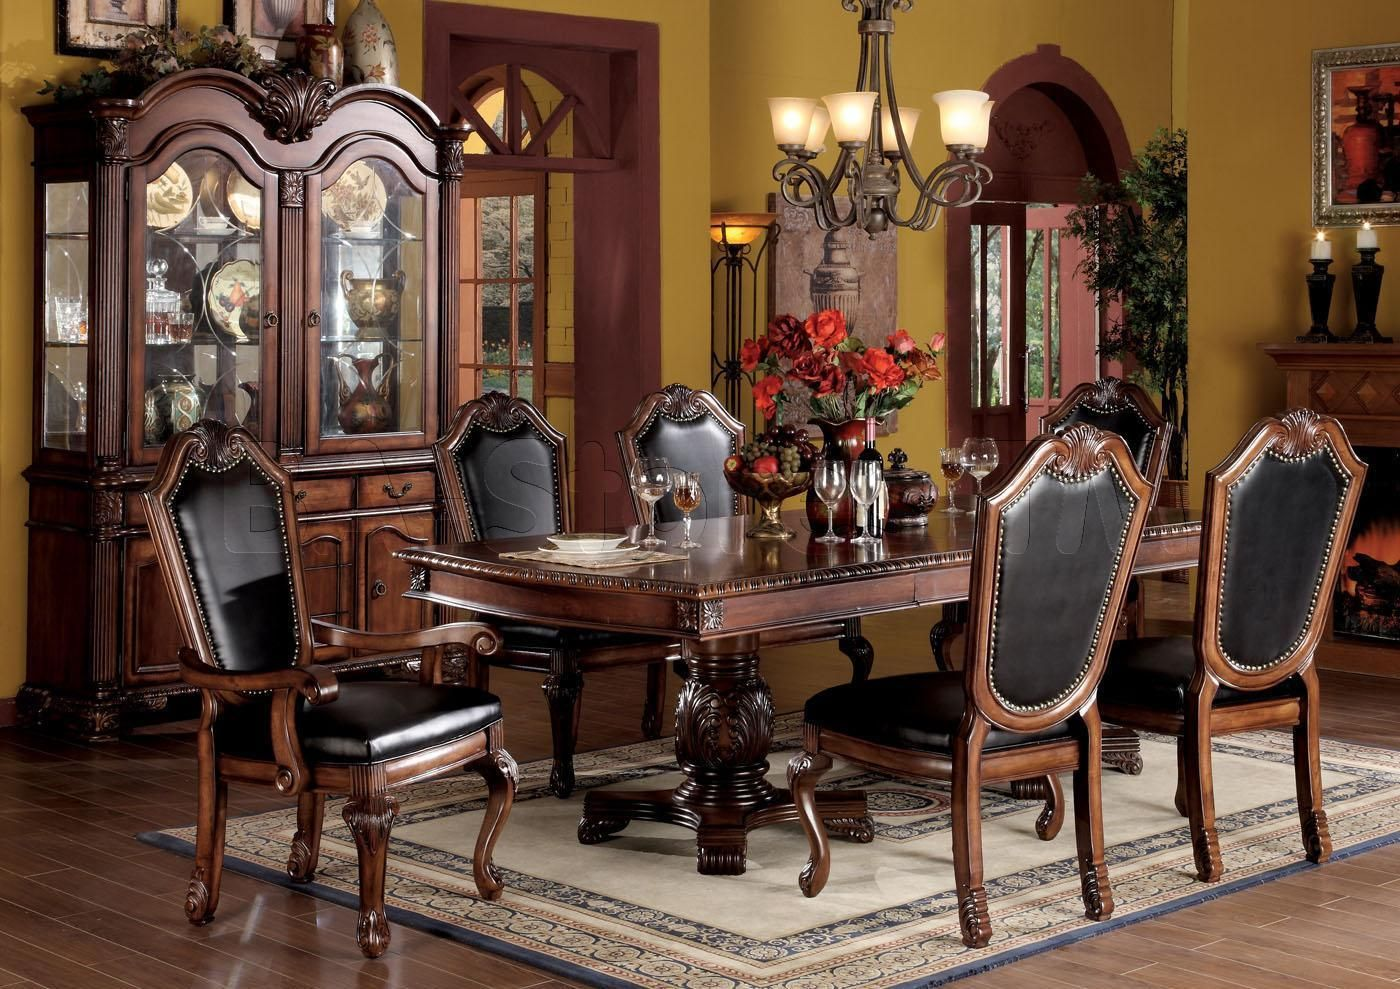 Winning Dining Room Furniture Sets inspirations the dining room     Winning Dining Room Furniture Sets inspirations the dining room dining room  restaurant saigon   Dining room   Pinterest   Furniture sets inspiration